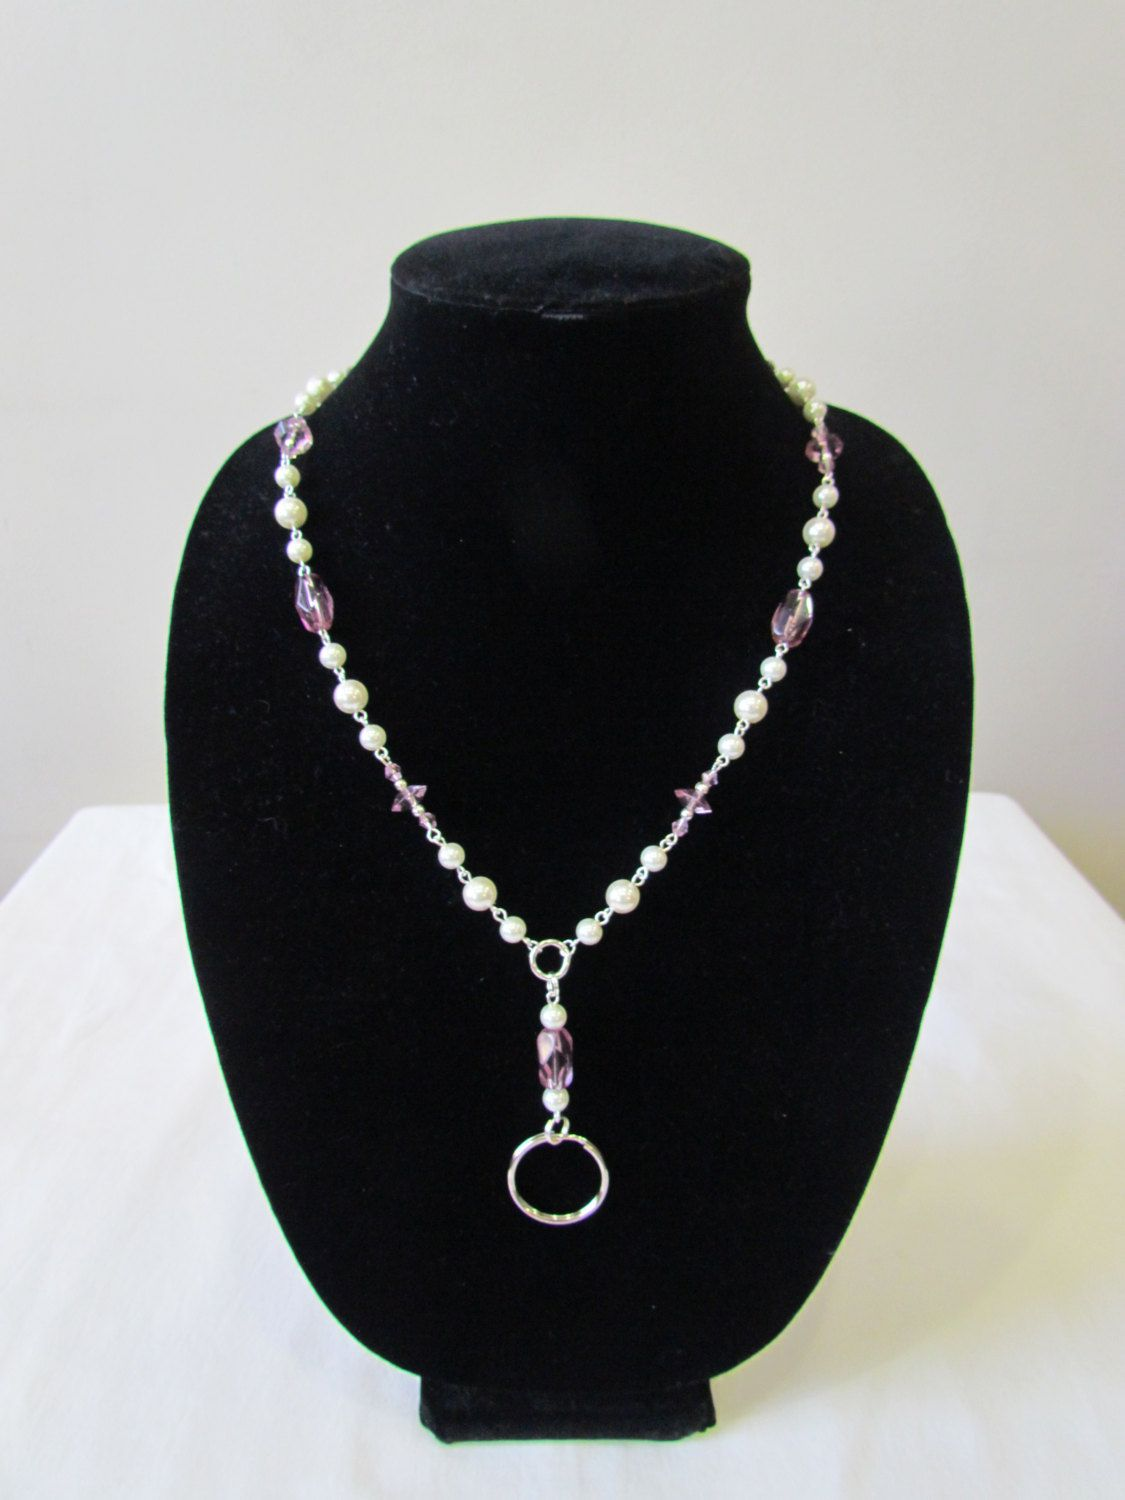 how to make a lanyard with beads